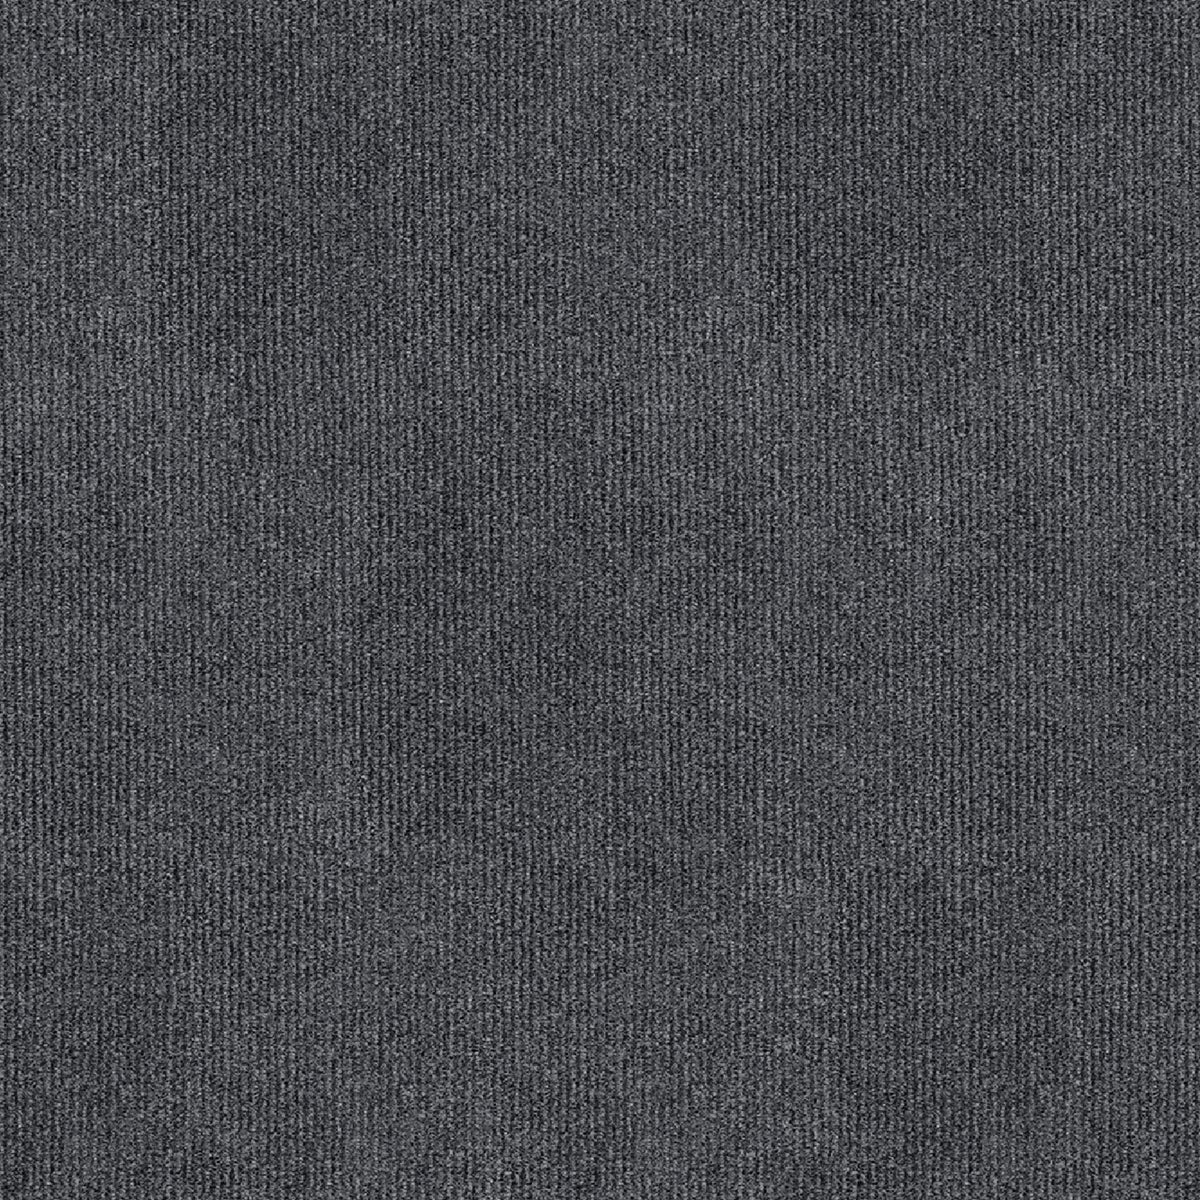 OPUS GREY CARPET - OPUGR06 by Dennis W J & Co